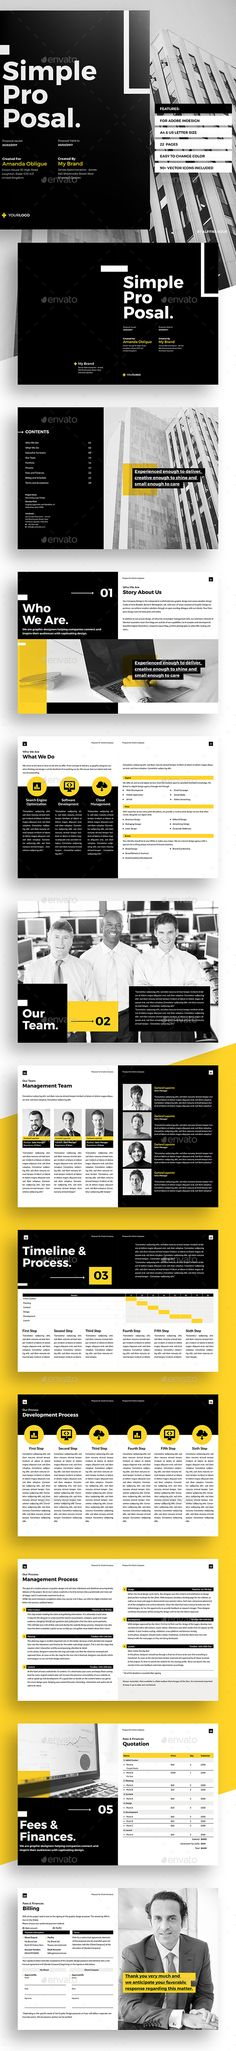 E-Proposal by LeafLove E-Proposal Template This layout is - marketing proposal templates